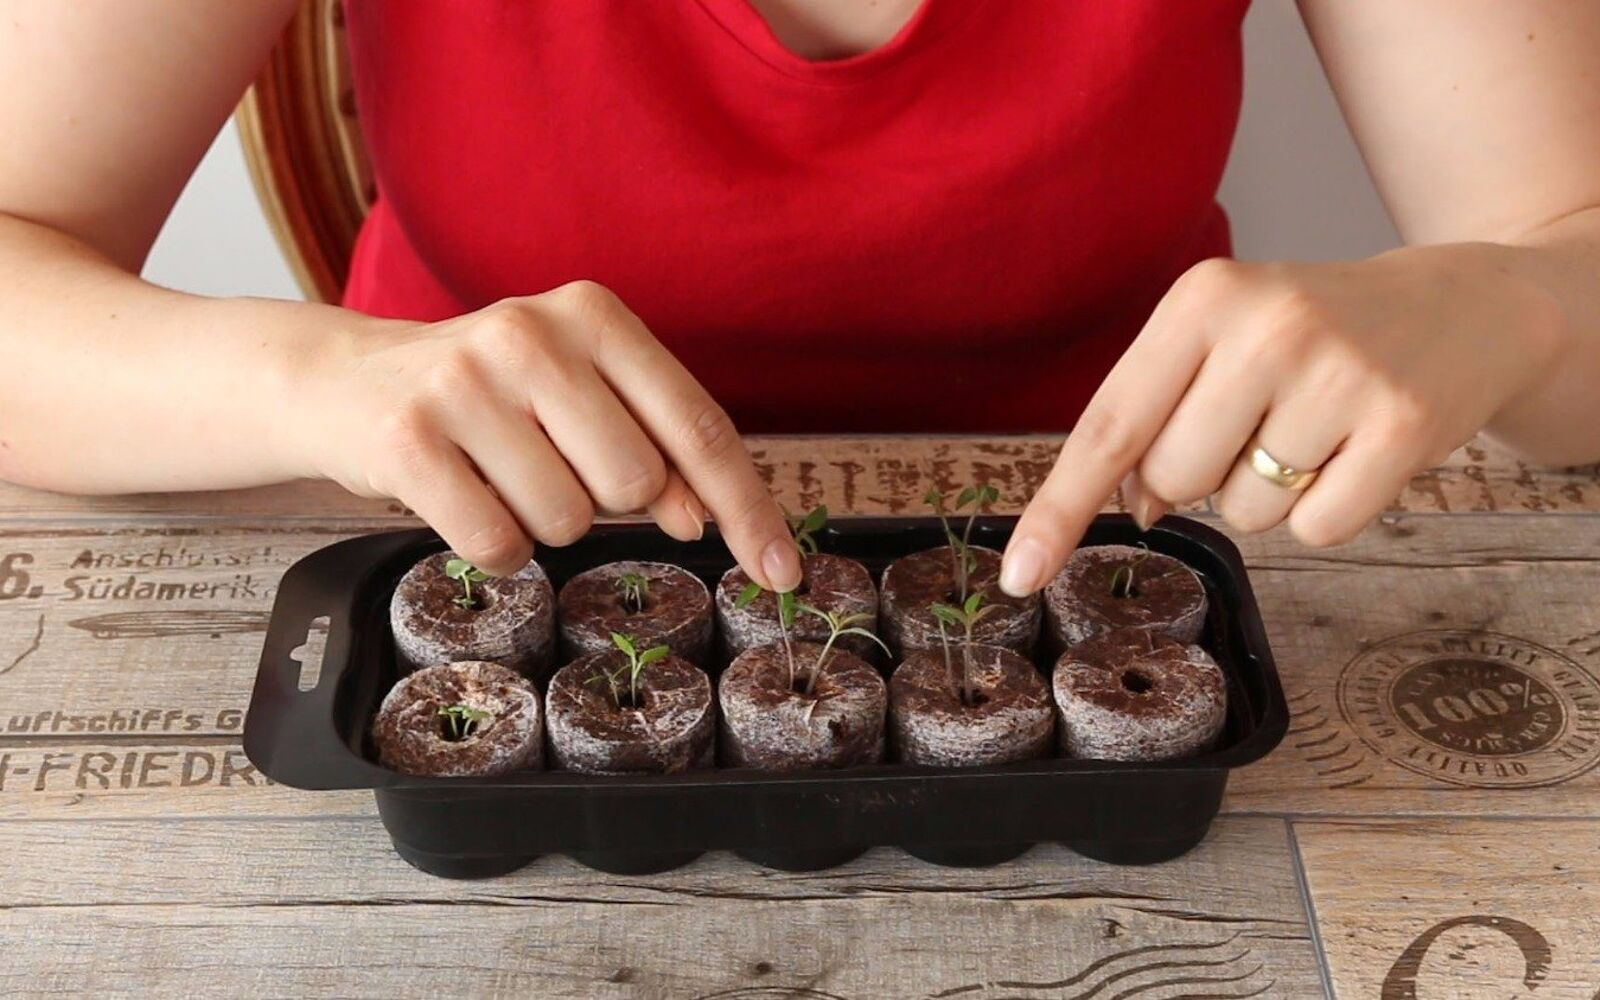 s the easiest ways to grow a bumper crop of tomatoes, Plant them in a growing kit